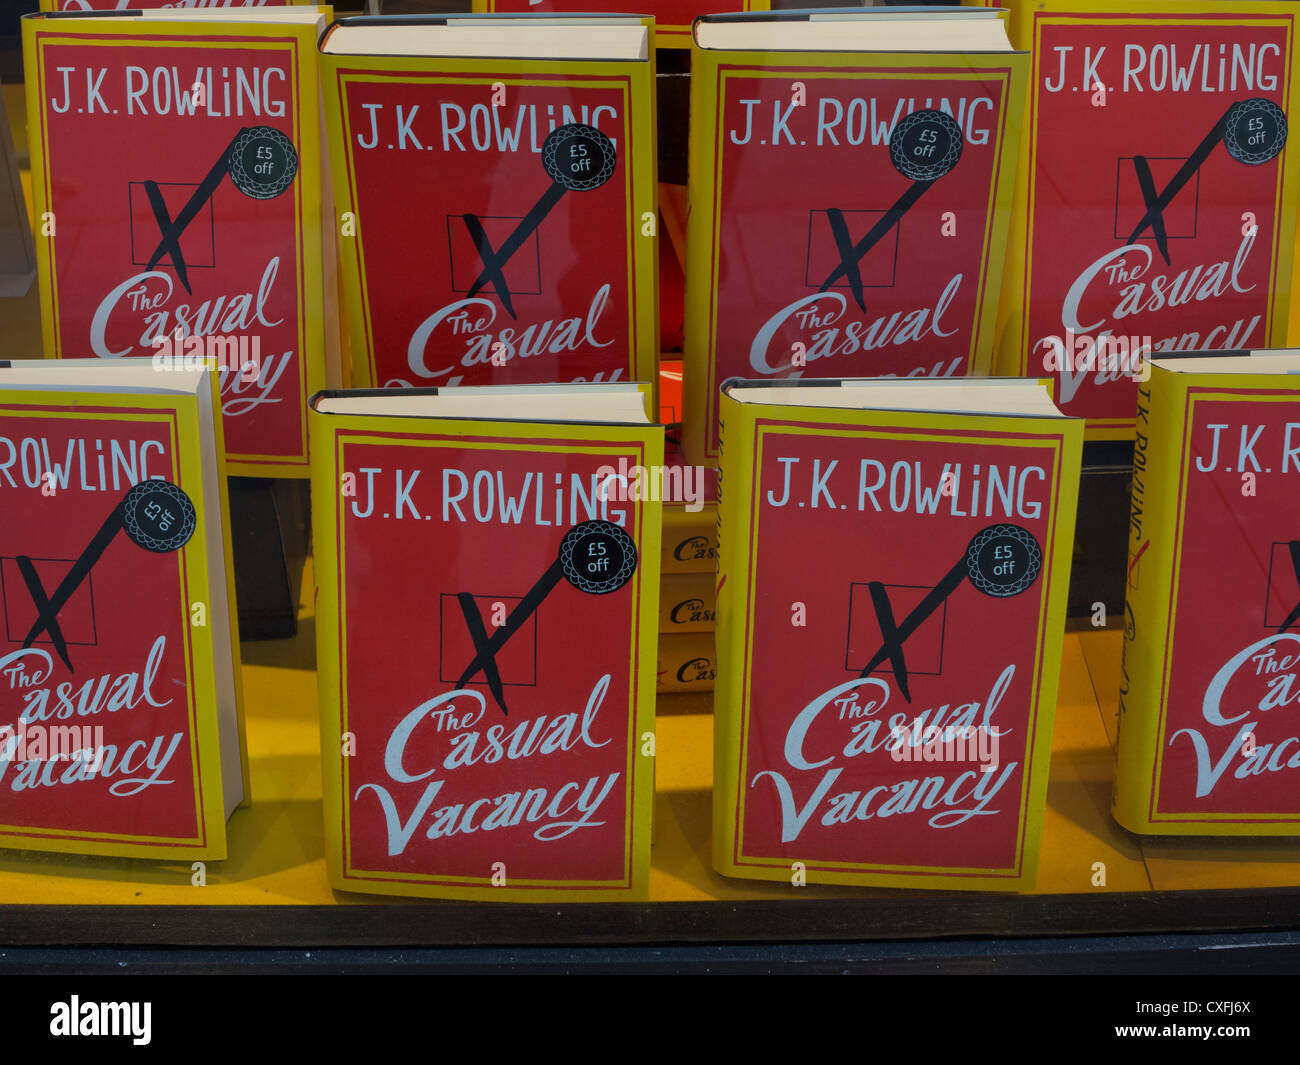 Writer J.K. Rowling fist novel since the end of the Harry Potter series:The Casual Vacancy for sale in bookstores - Stock Image